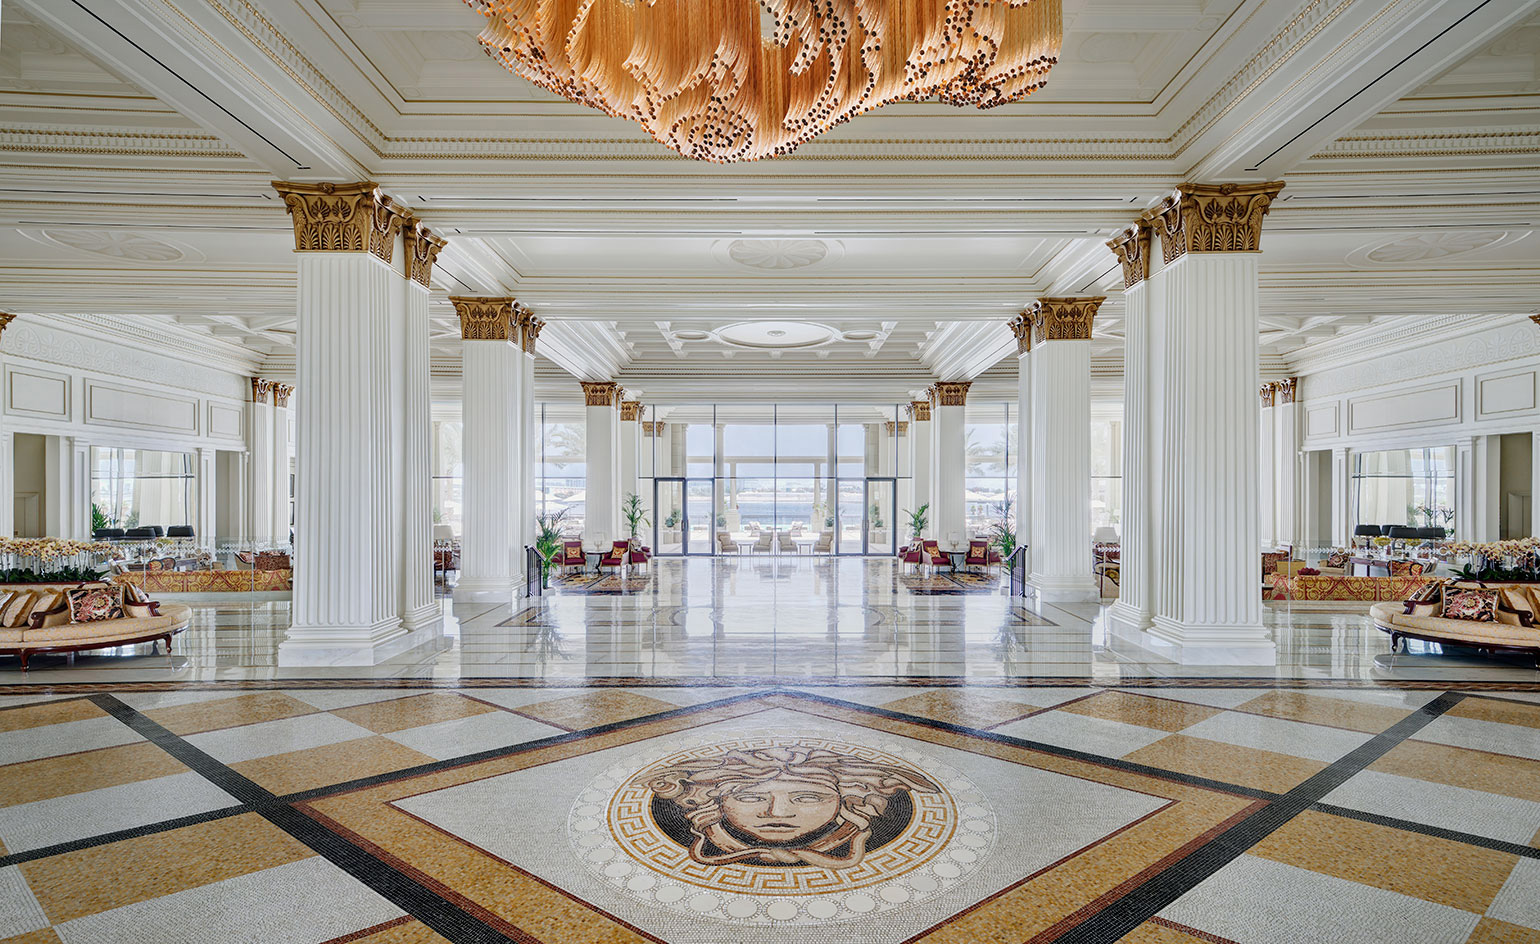 Palazzo versace wallpaper Grand home furniture dubai